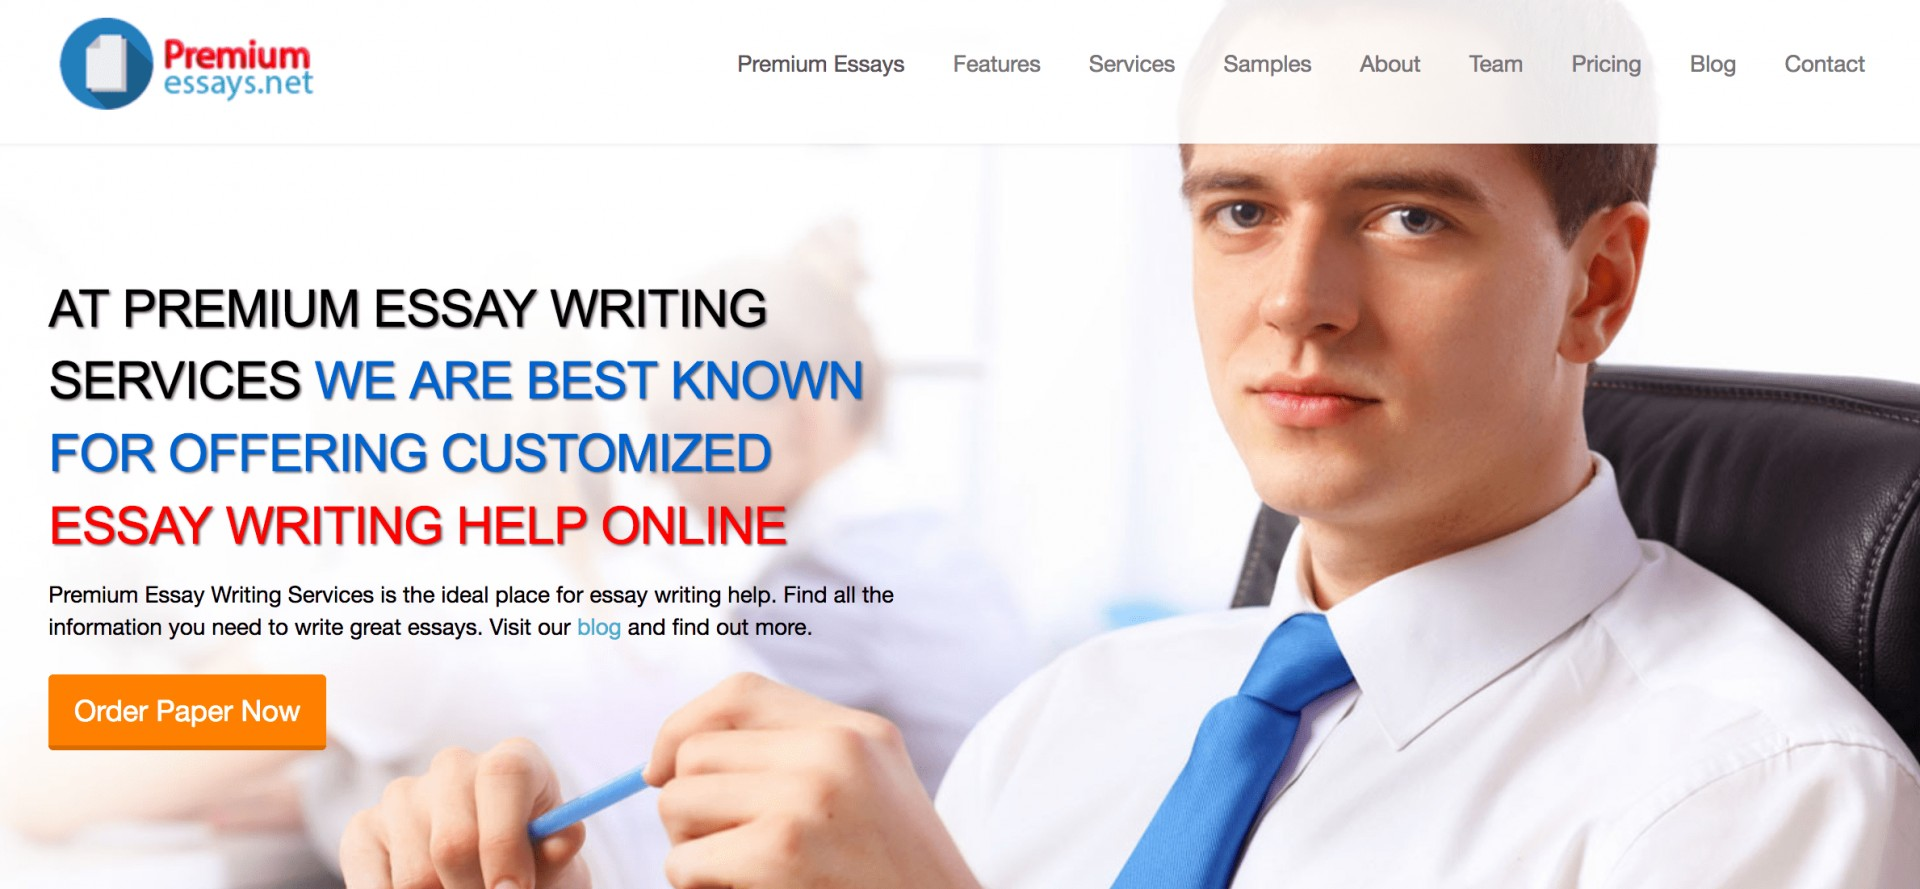 013 Essay Example Writing Service 3752552280 Premium Wondrous Cheap Australia Best Reddit Reviews 1920